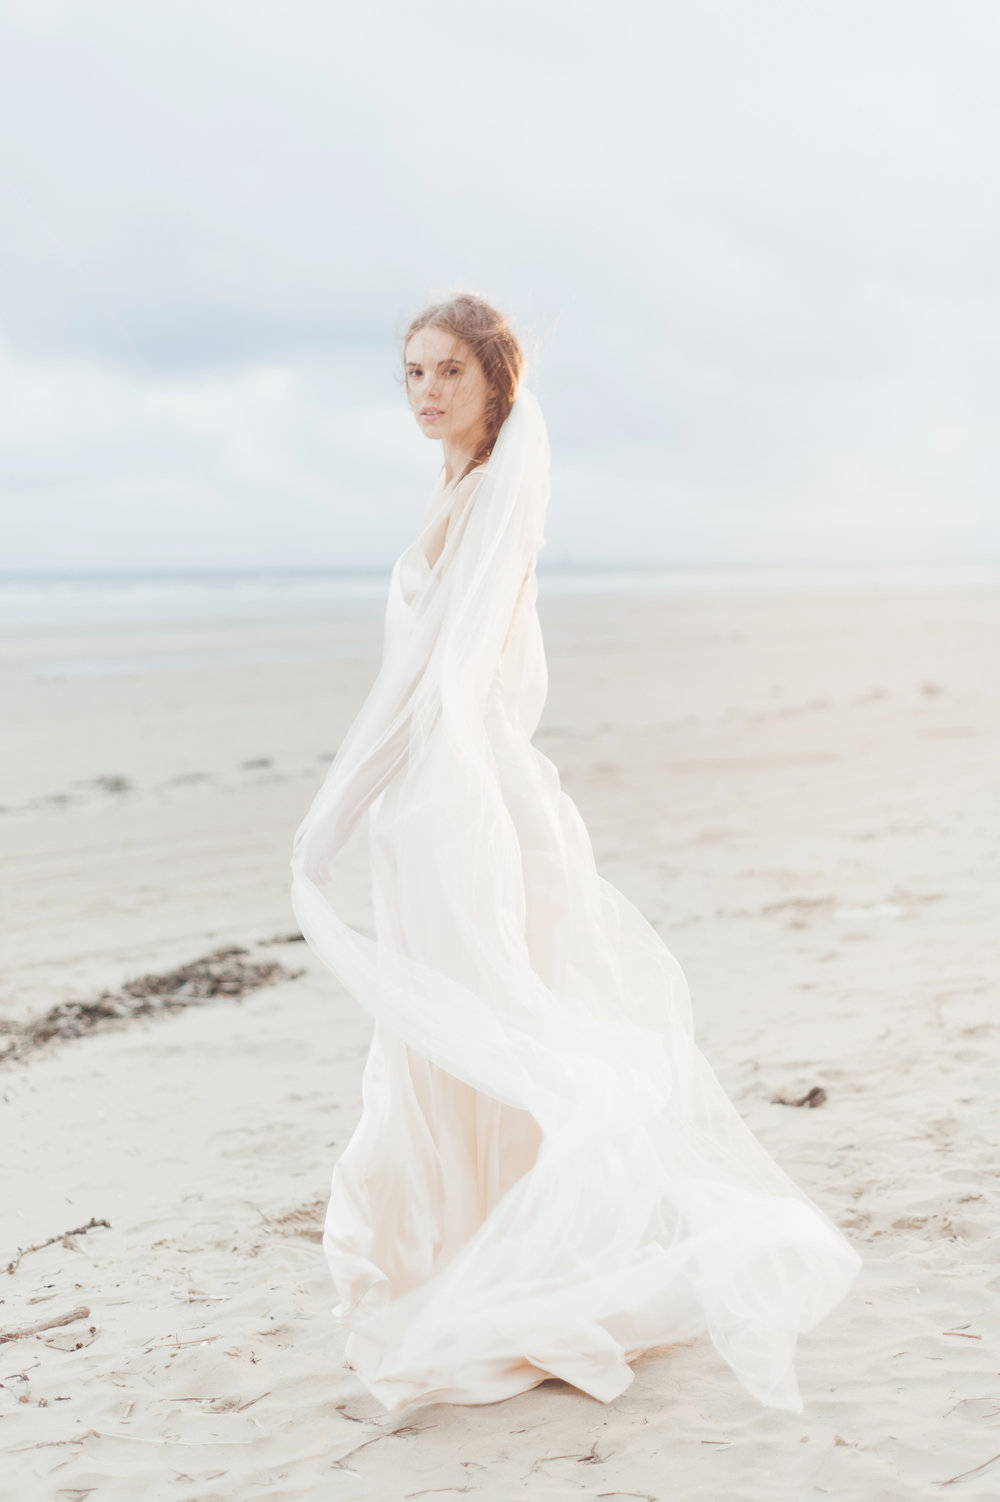 Kate-Beaumont-Wedding-Dresses-Formby-Beach-Emma-Pilkington-49.jpg